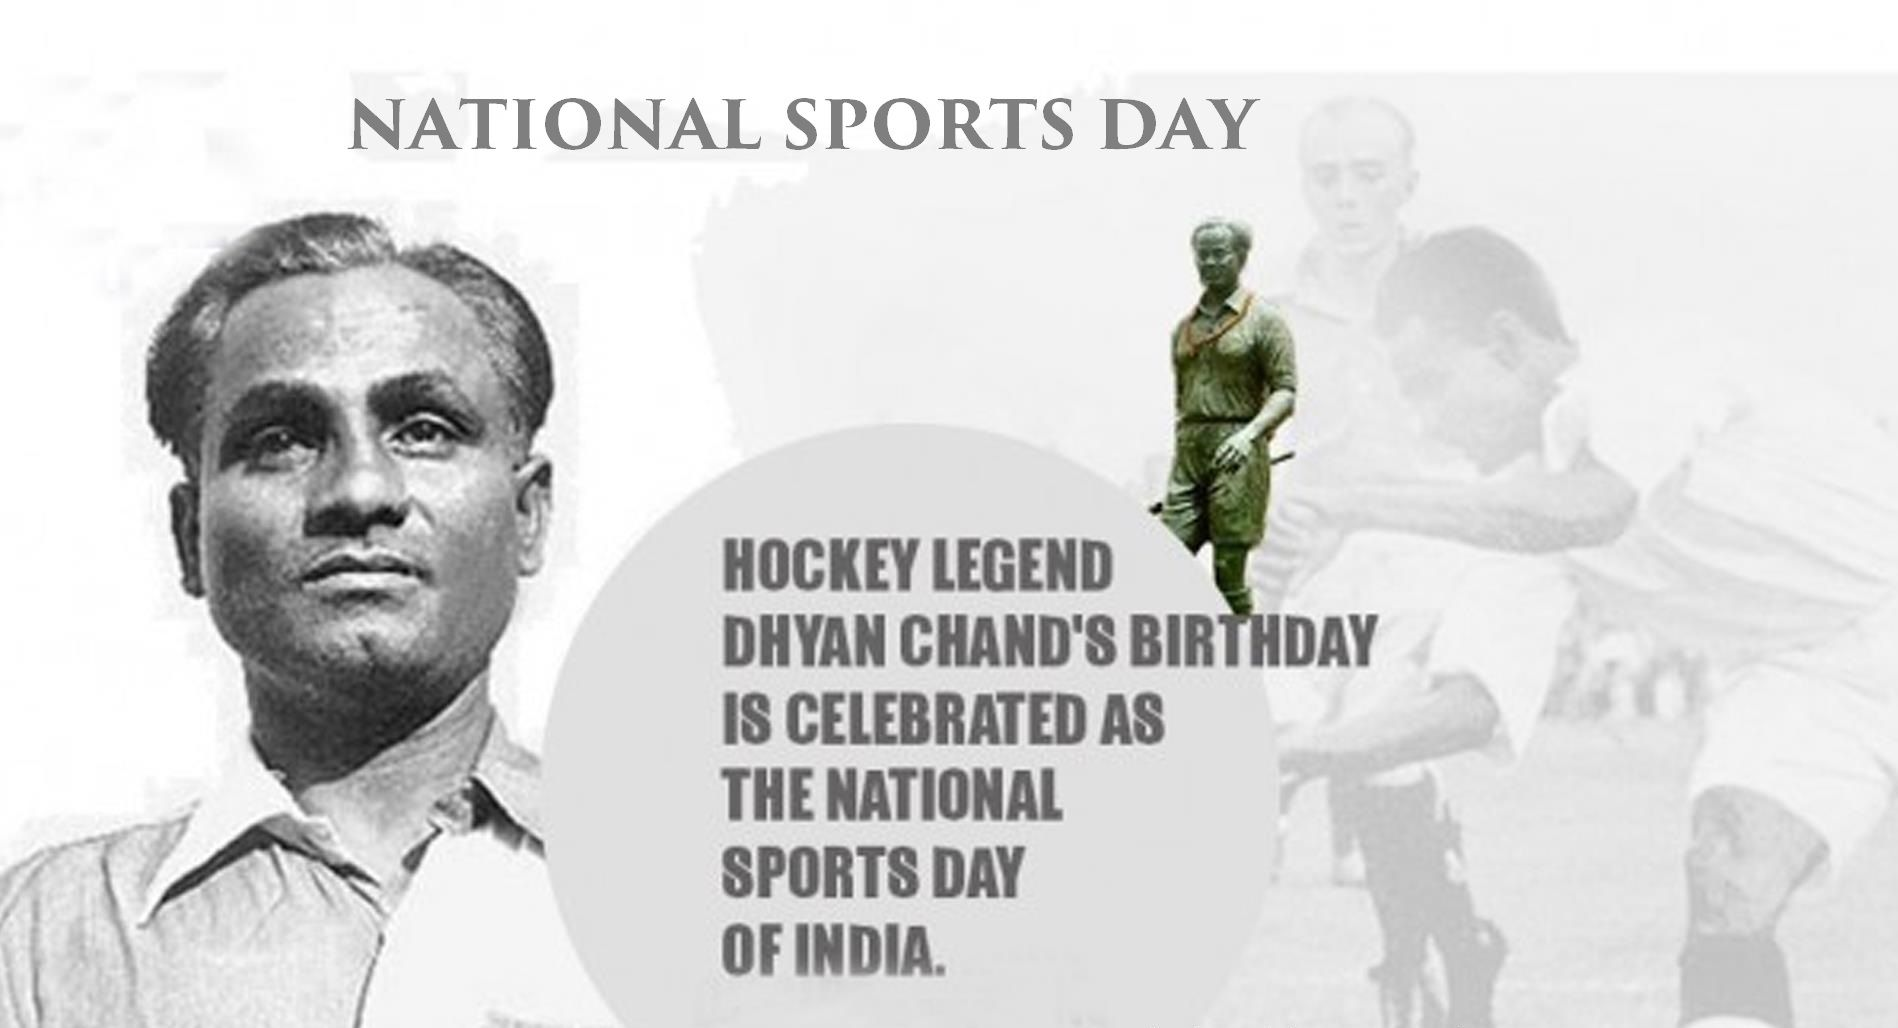 Today National Sports Day celebrated in remembrance of